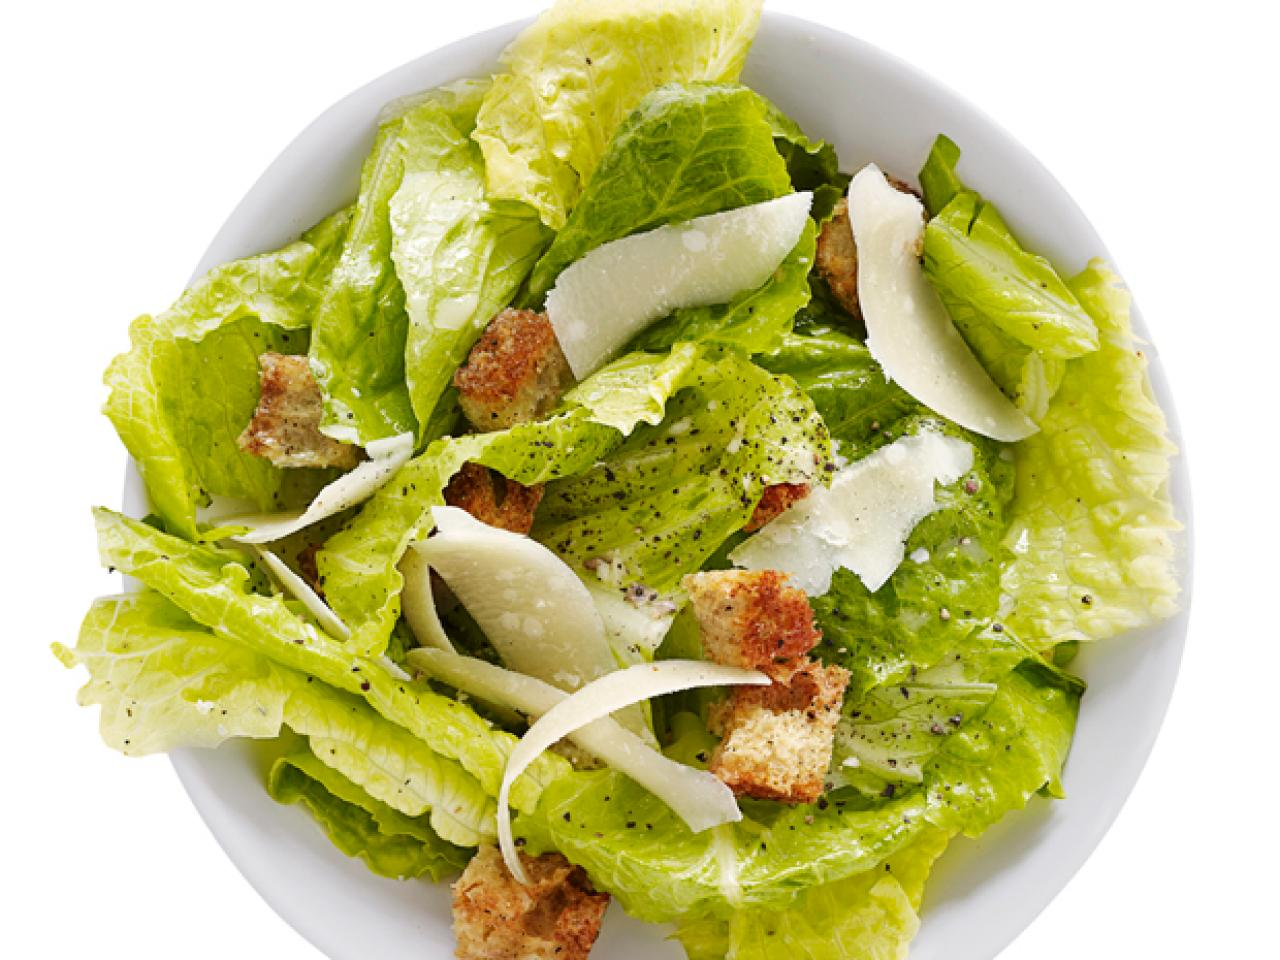 50 Simple Salads Recipes And Cooking Food Network